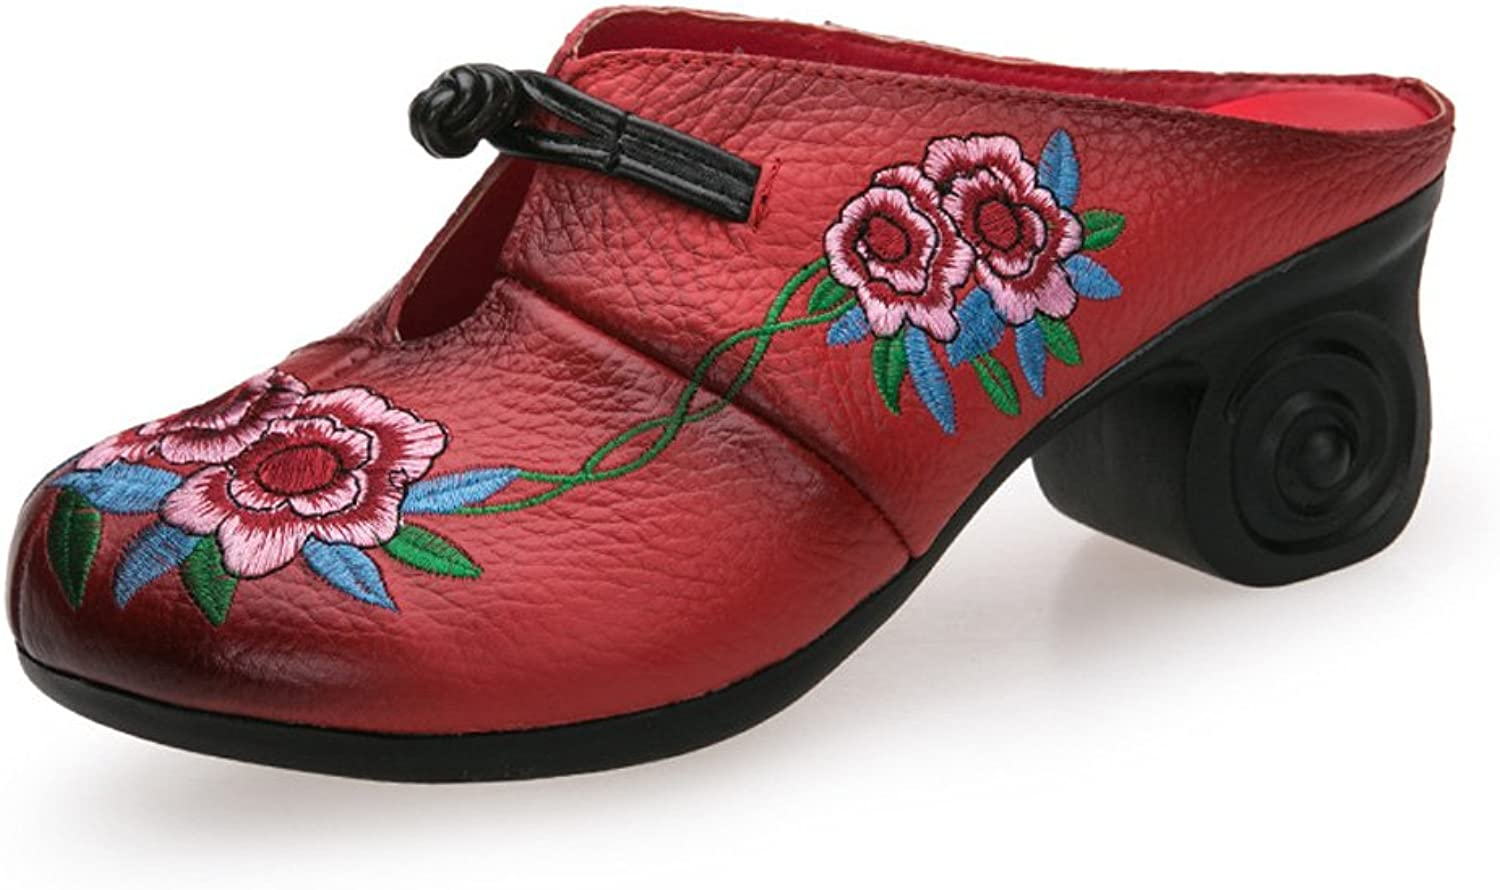 JINGFUTONG Retro Women's Embroidered Leather Block Heel Clogs Mule Sandals